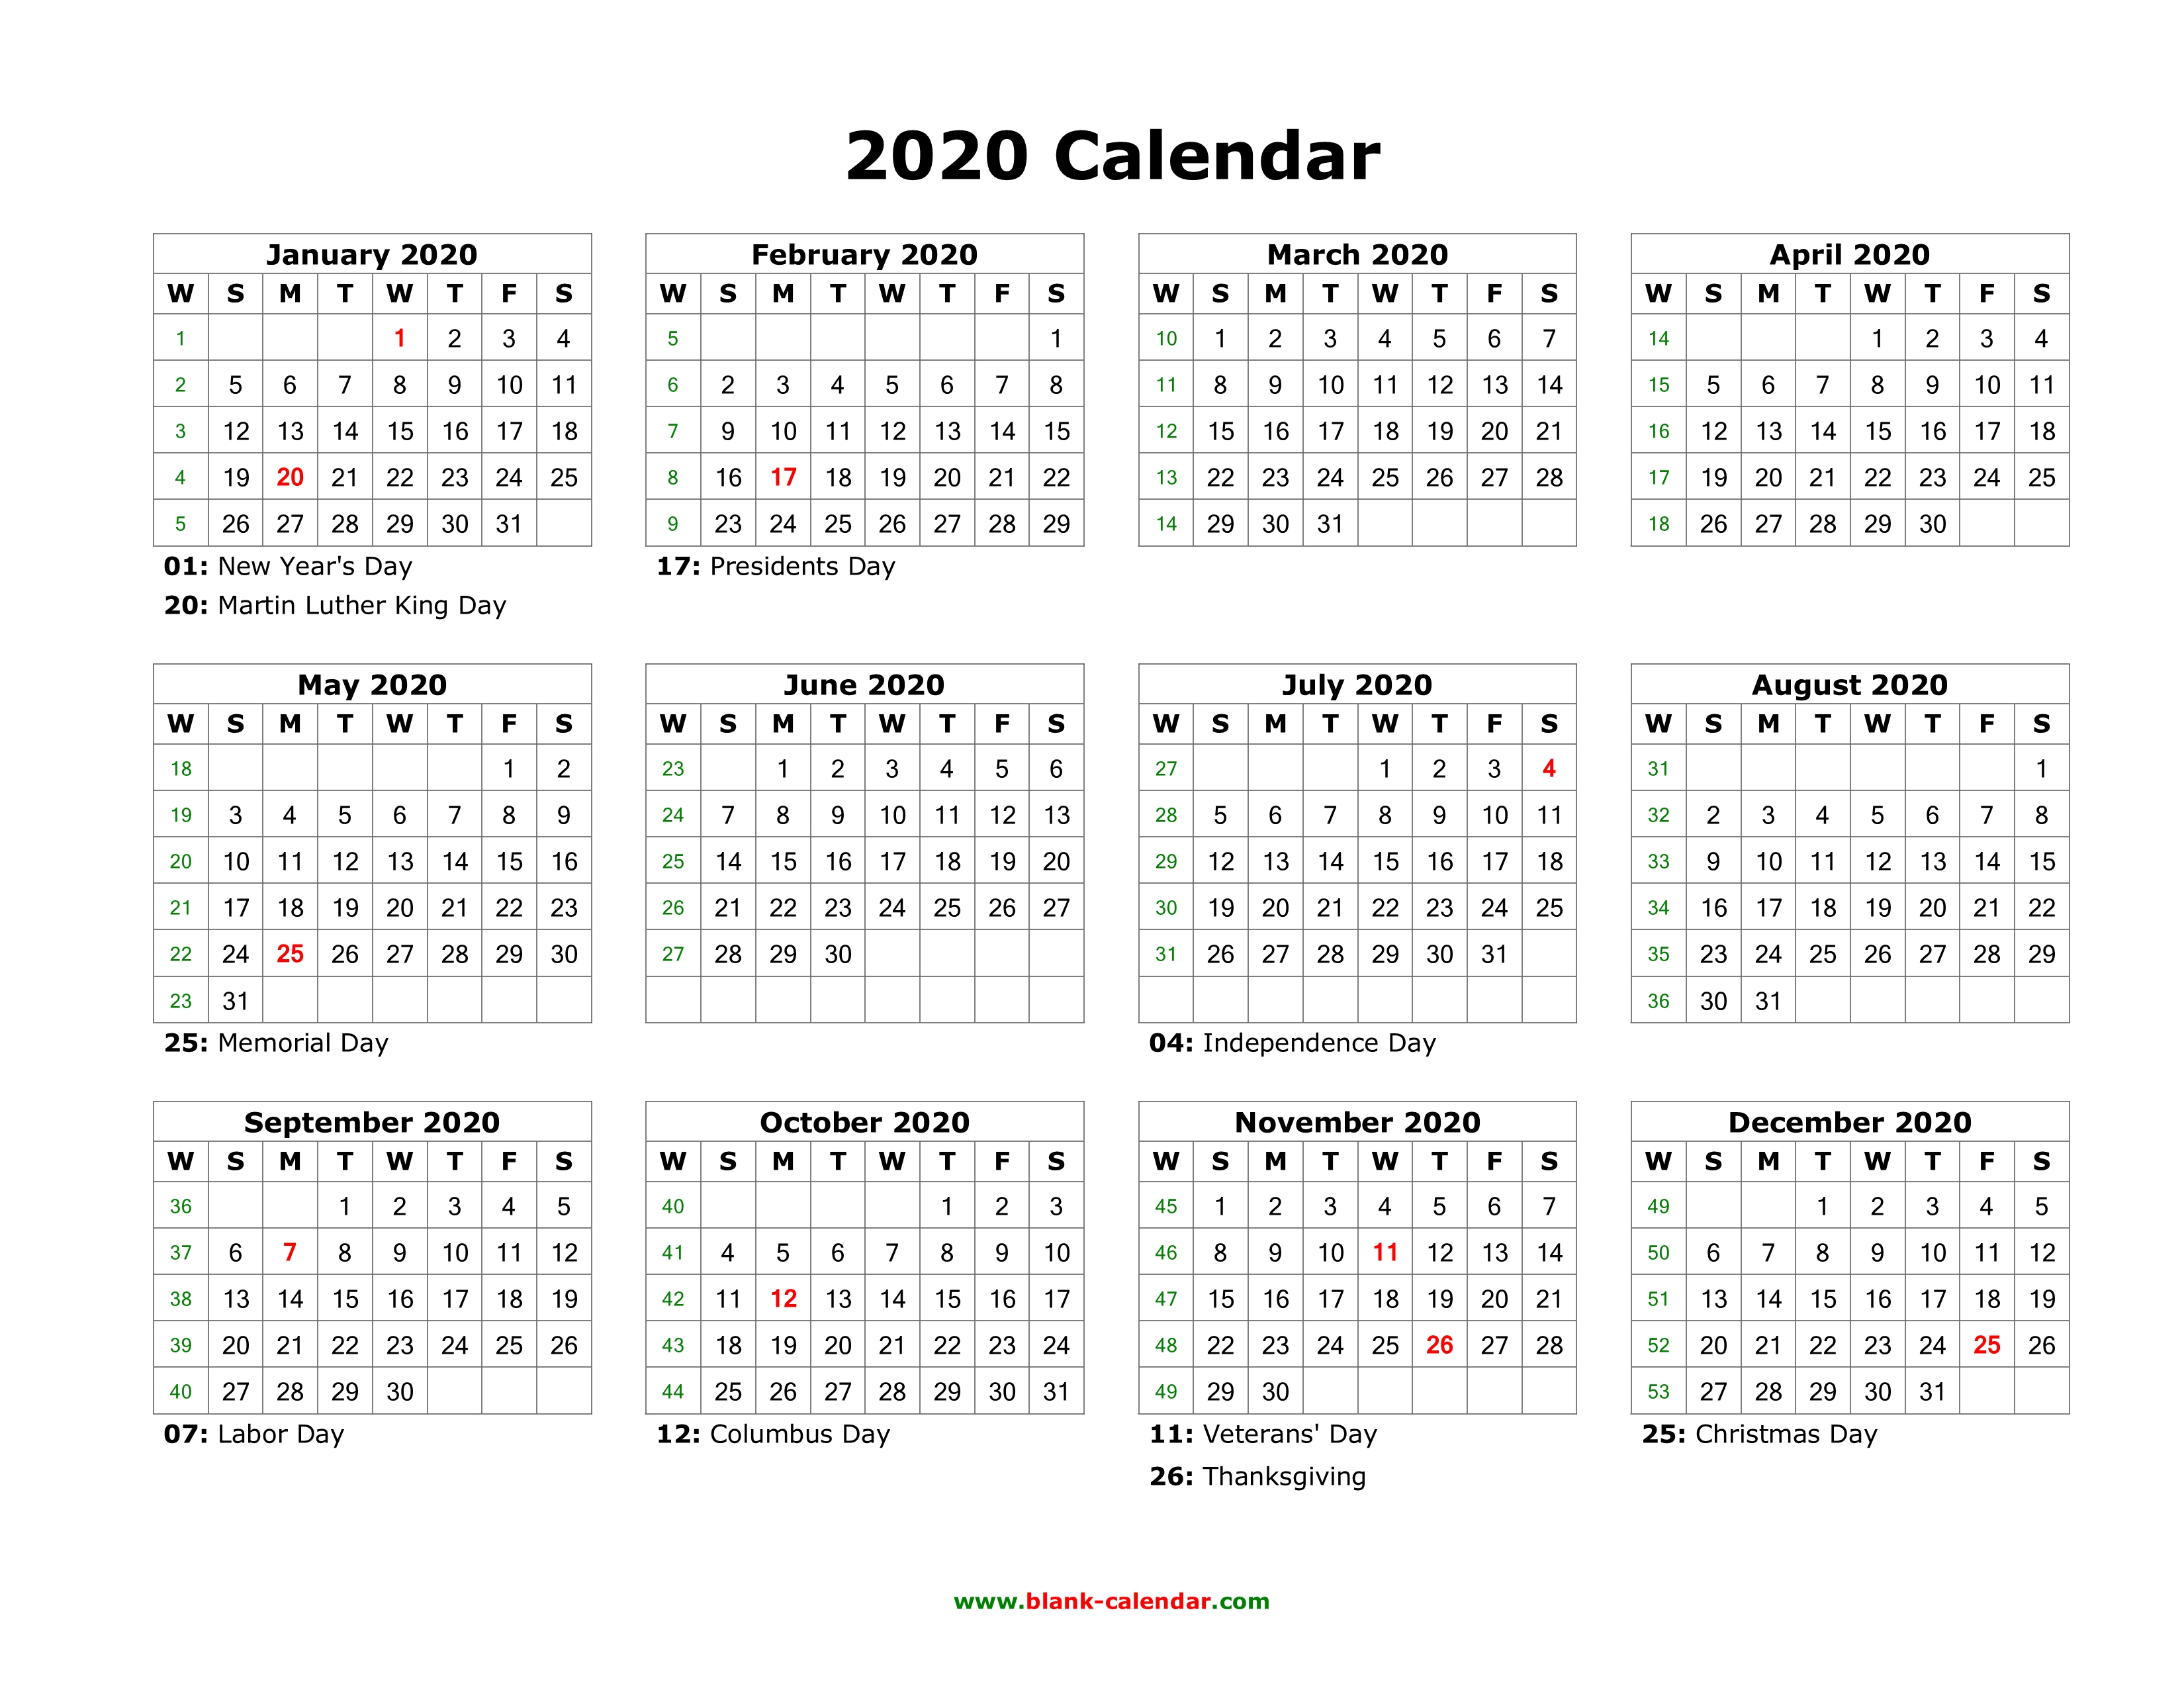 Download Blank Calendar 2020 With Us Holidays (12 Months On One Page pertaining to Blank 12 Month Calendar Printable